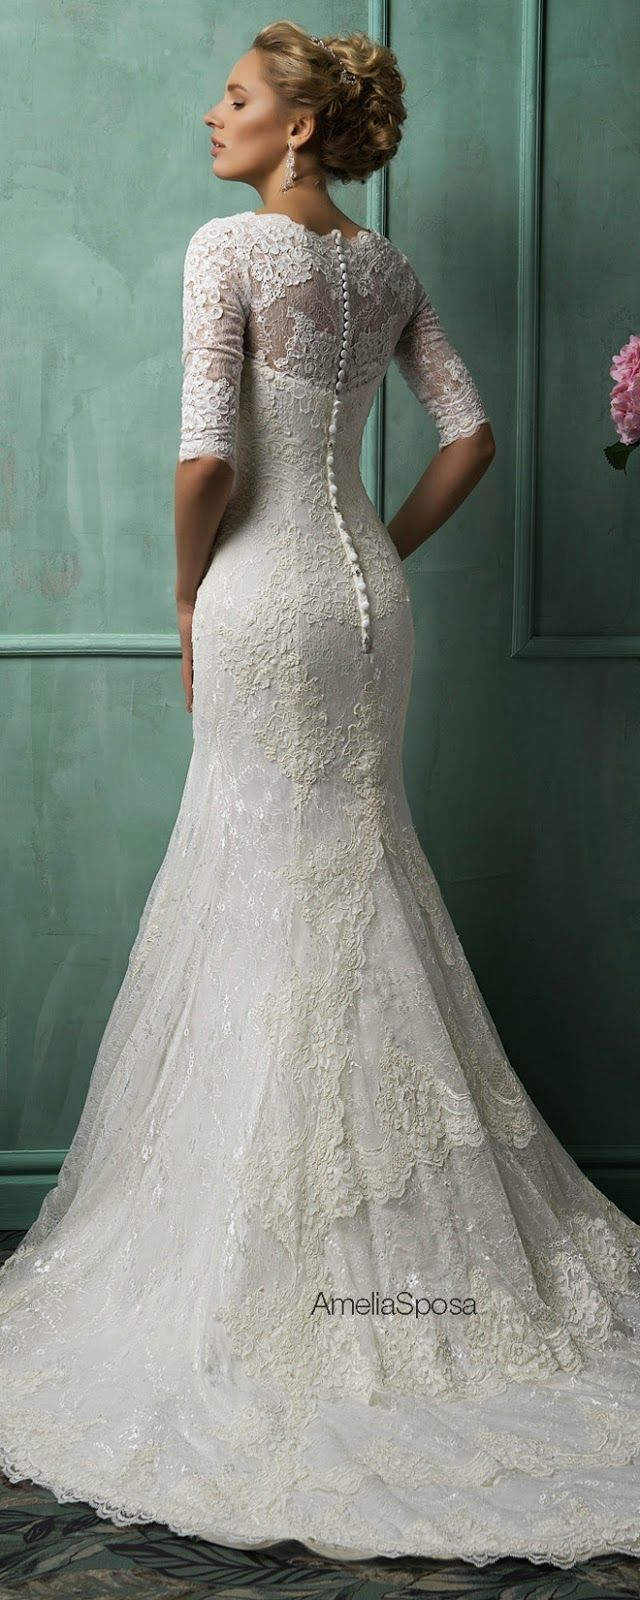 Buttons Down the Back: Sophisticated Wedding Gowns | Sophisticated ...